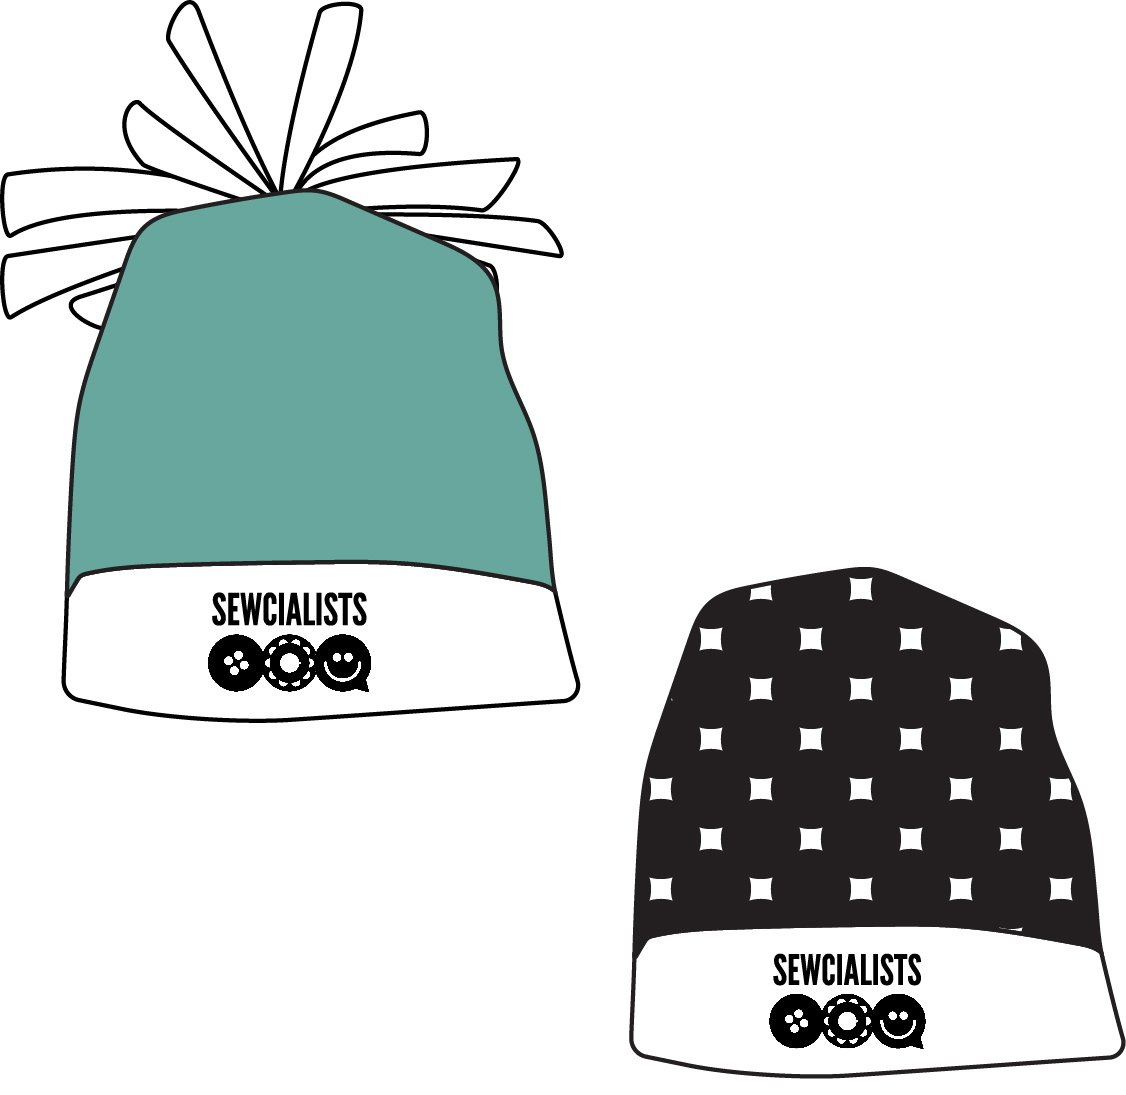 Drawing of the Workhorse x Sewcialists beanie, with and without pompom on top, with the Sewcialists logo on the brim.